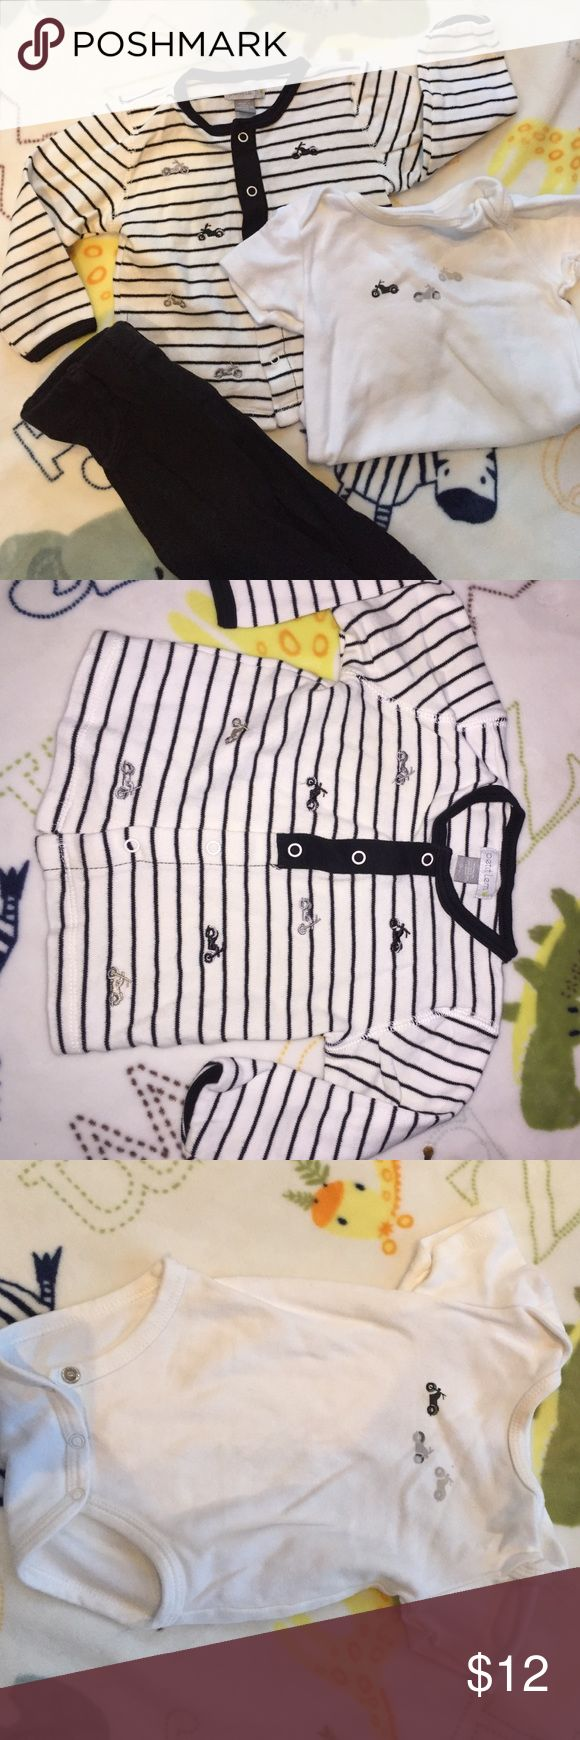 3pc Motorcycle Outfit Super cute black and white motorcycle outfit - onesie, cardigan and pants. Great condition, no stains. Petit Lem Matching Sets